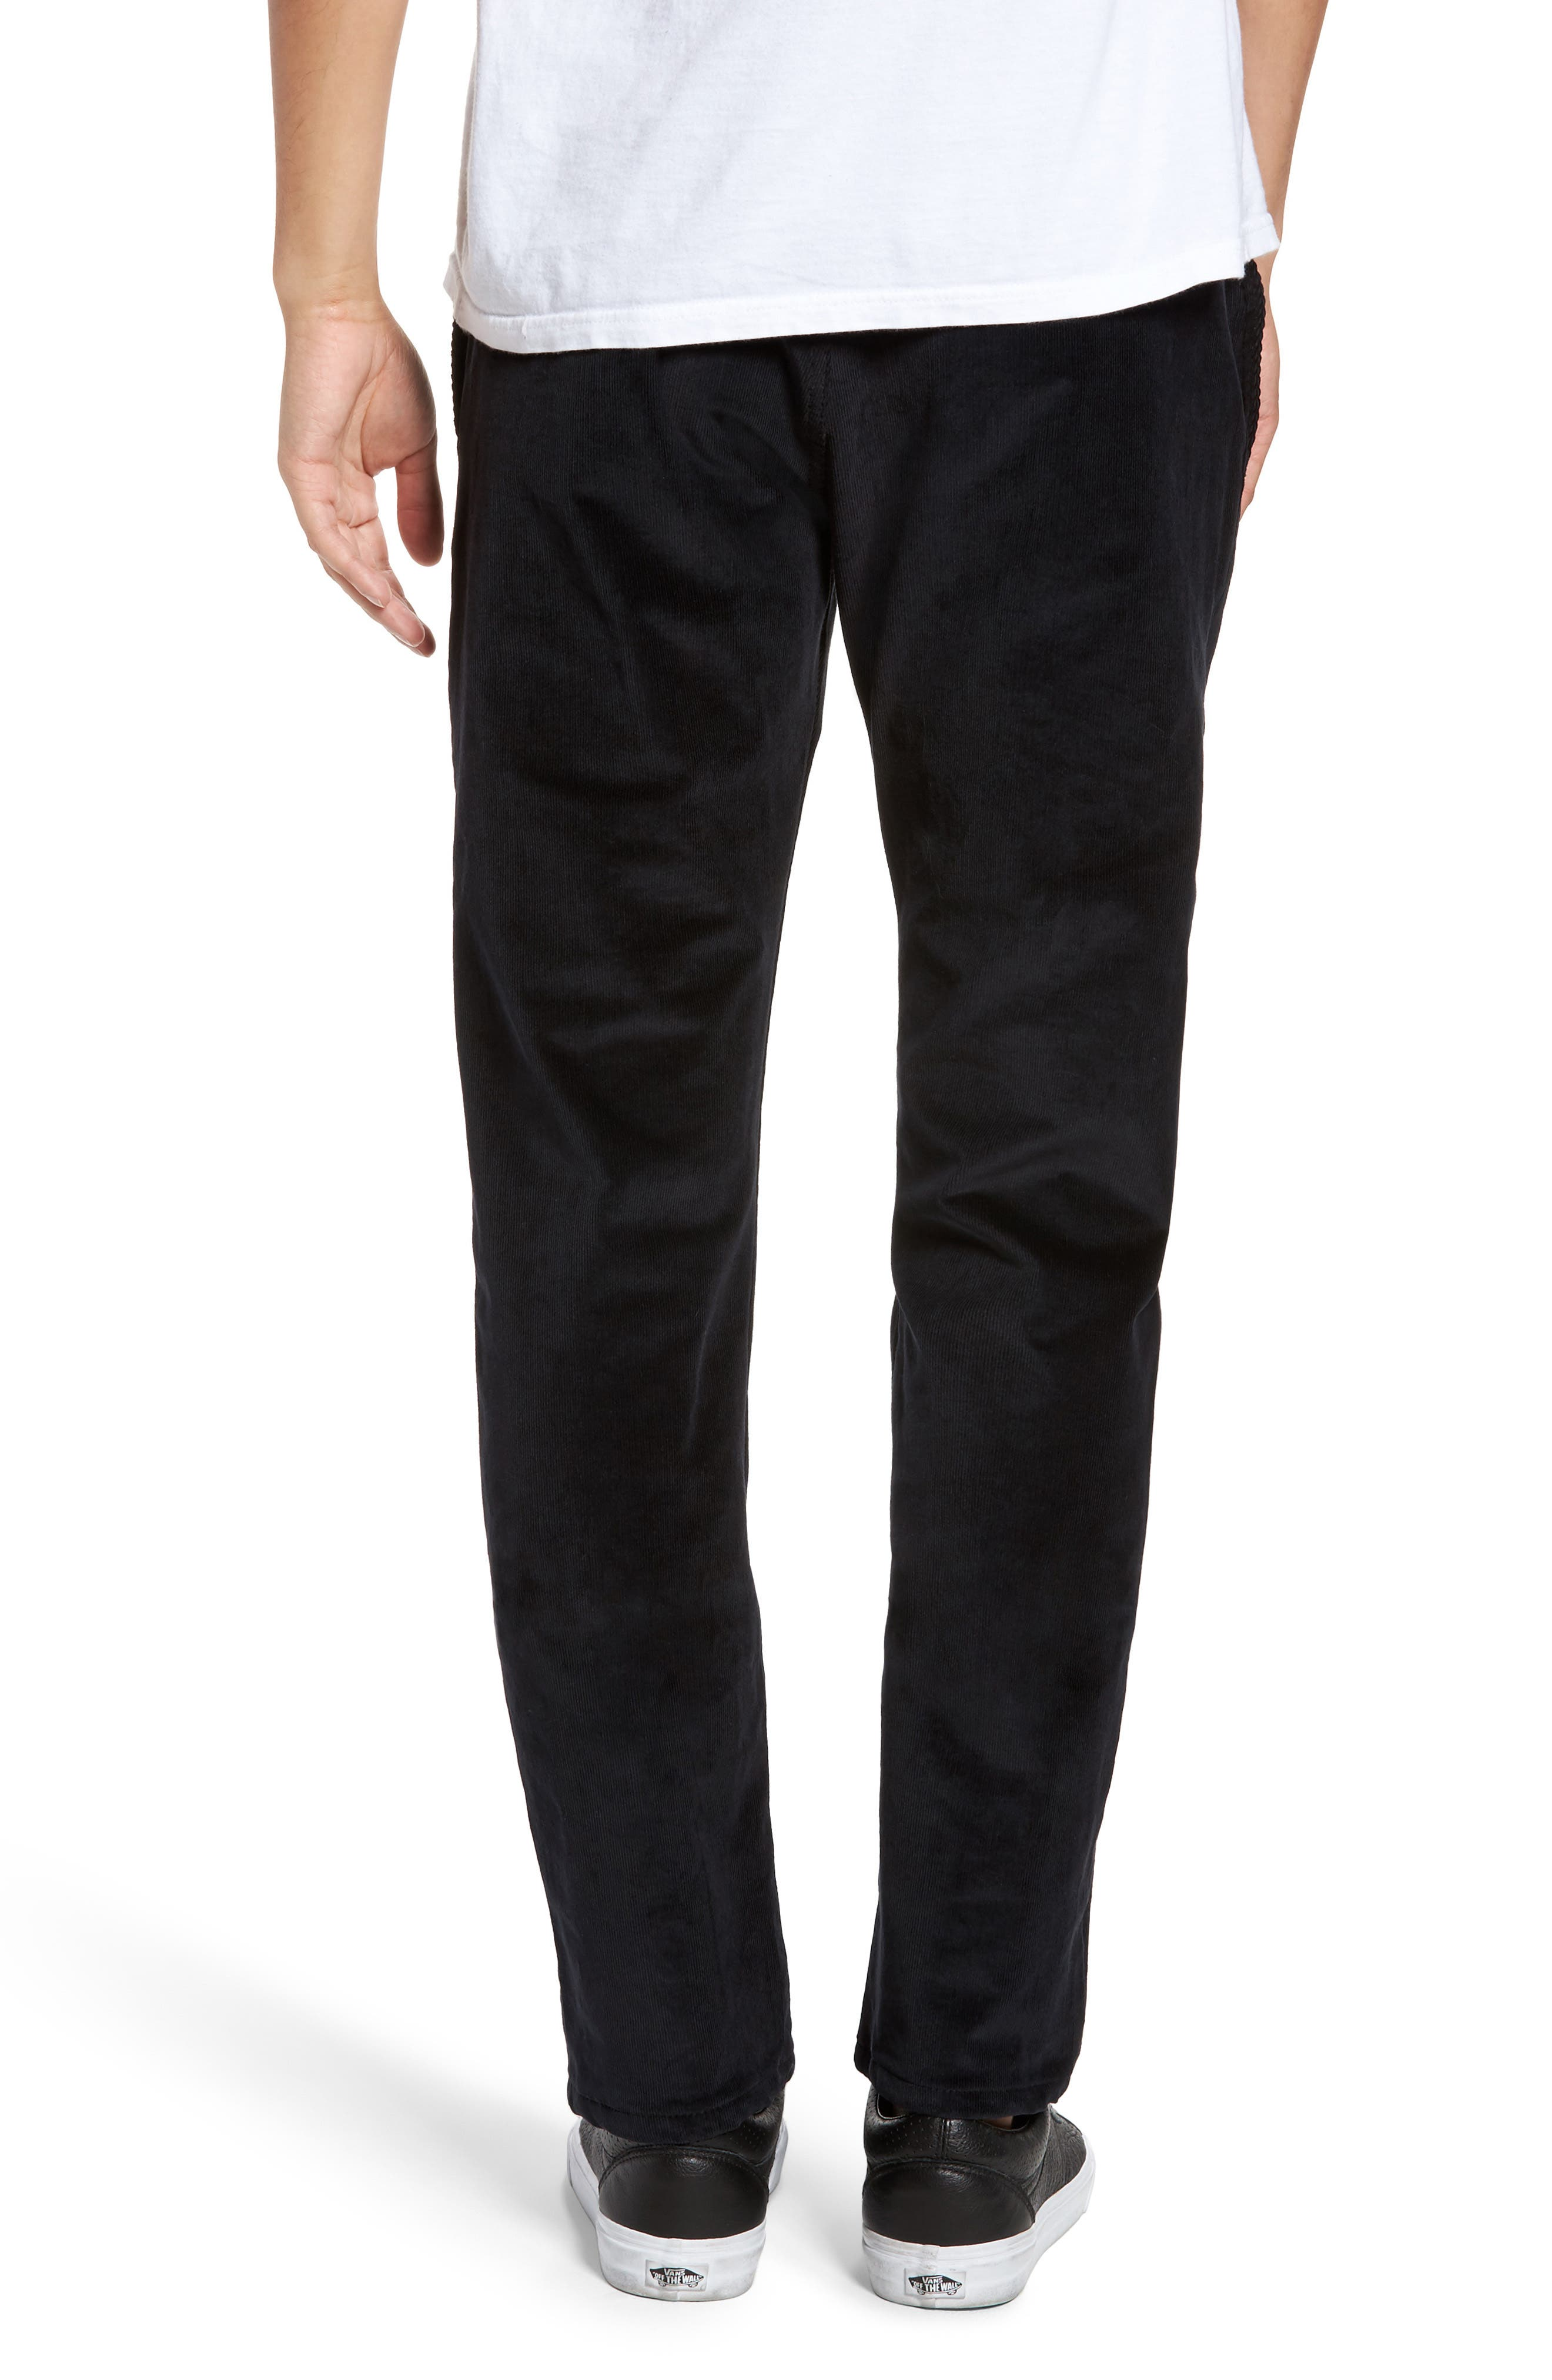 Naked & Famous Slim Chino Slim Fit Corduroy Pants,                             Alternate thumbnail 2, color,                             001